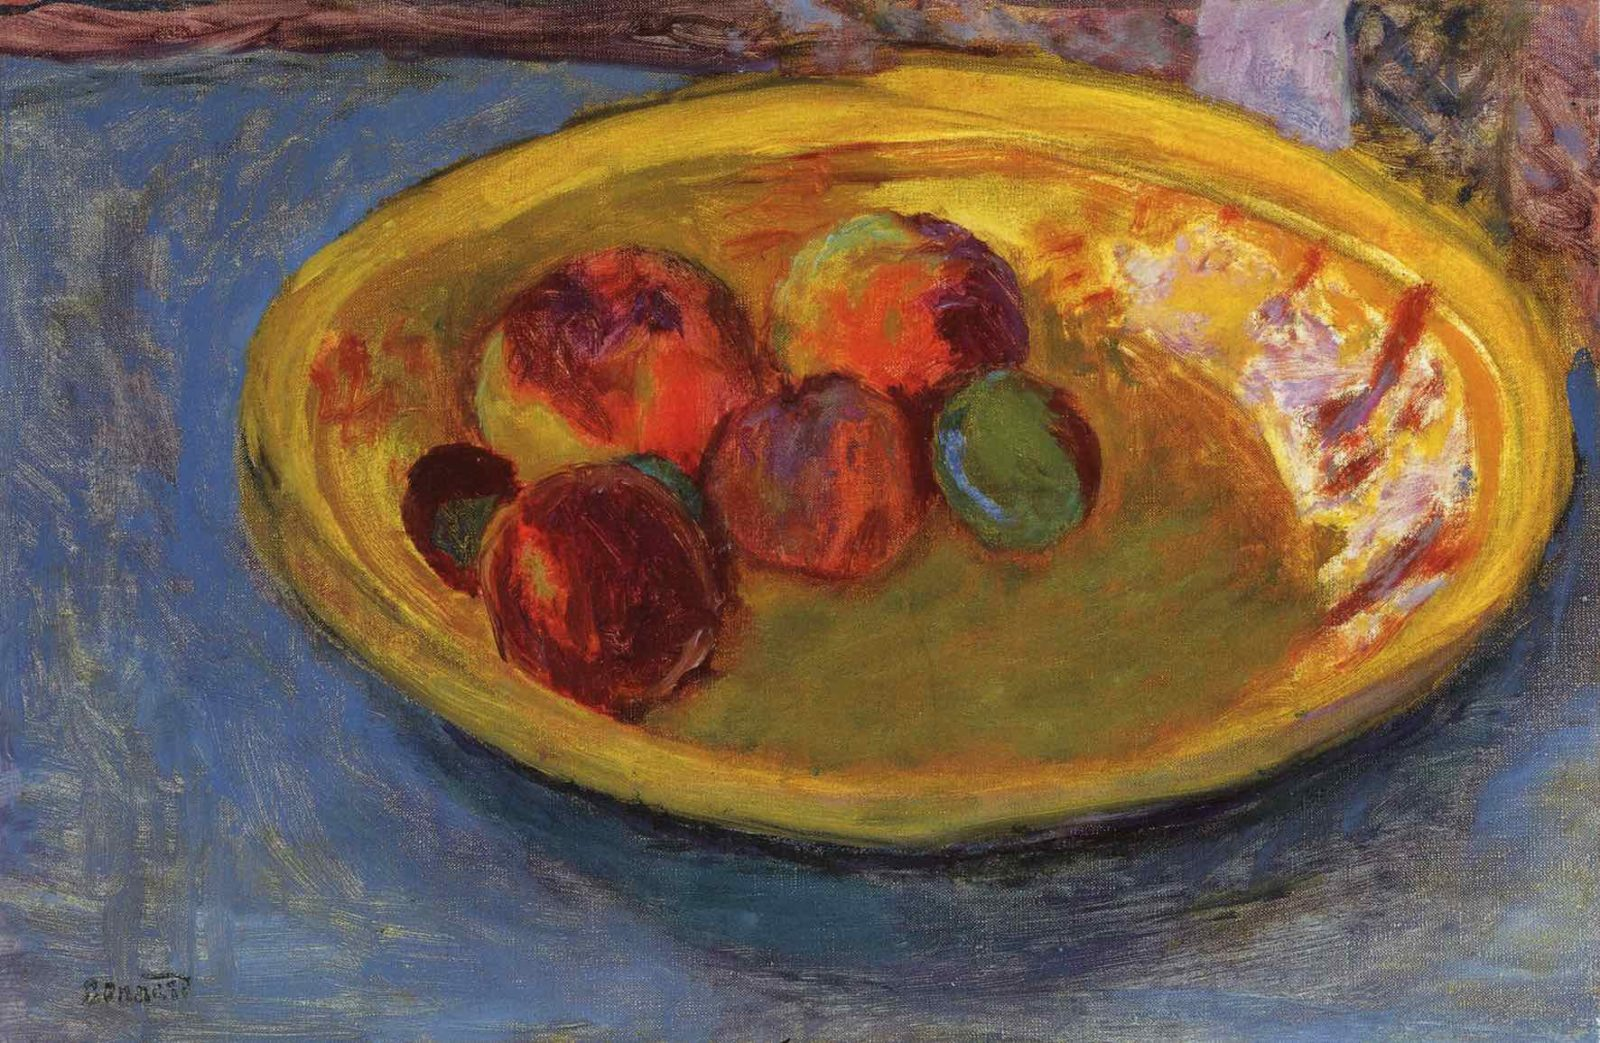 Pierre Bonnard Assiette de fruits, 1930.